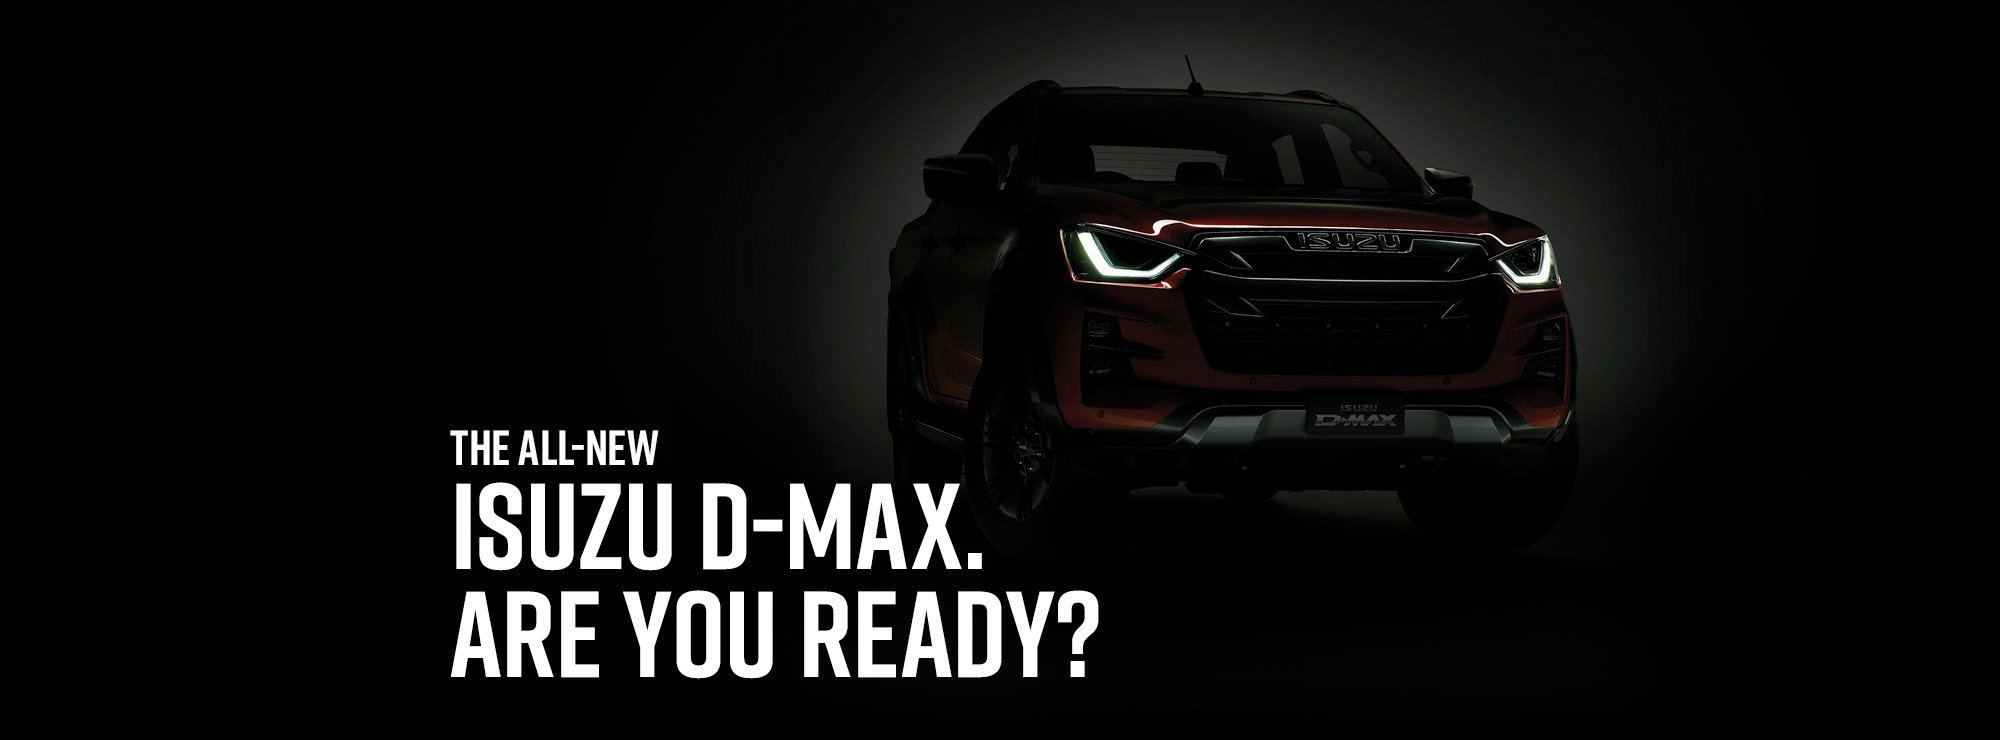 Isuzu D-Max is Coming